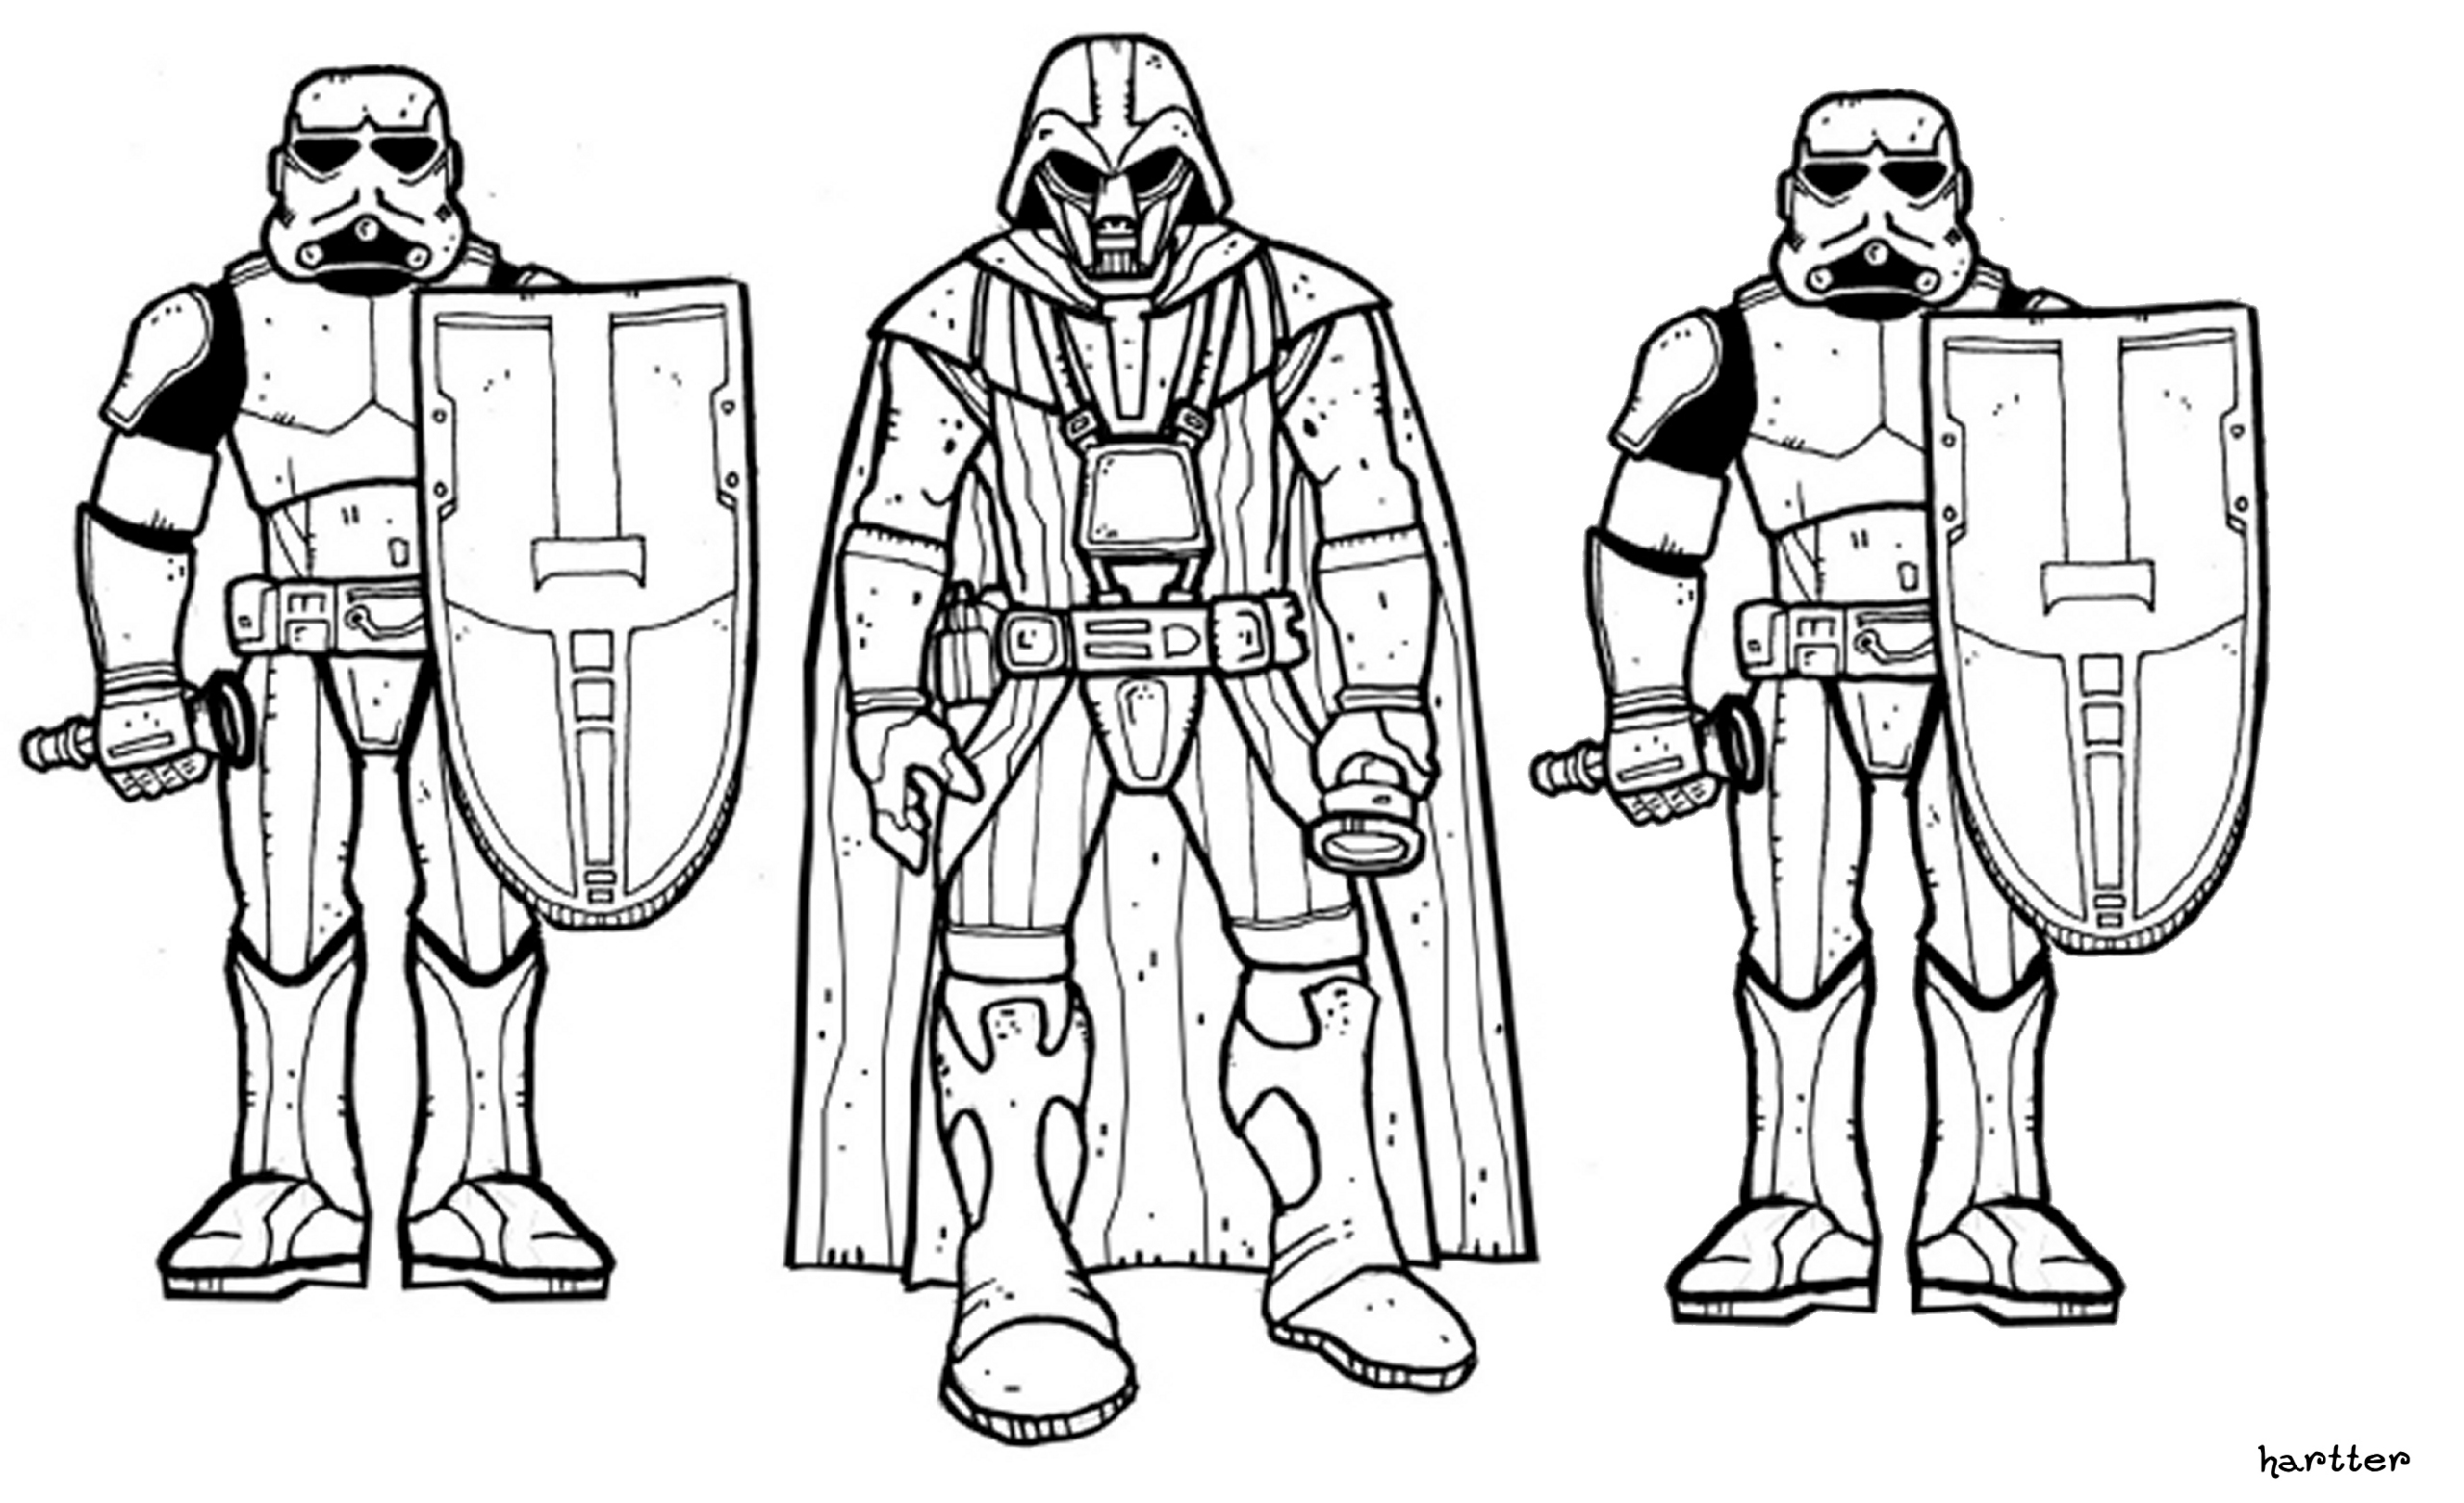 coloring star wars clone star wars to download star wars kids coloring pages wars star coloring clone